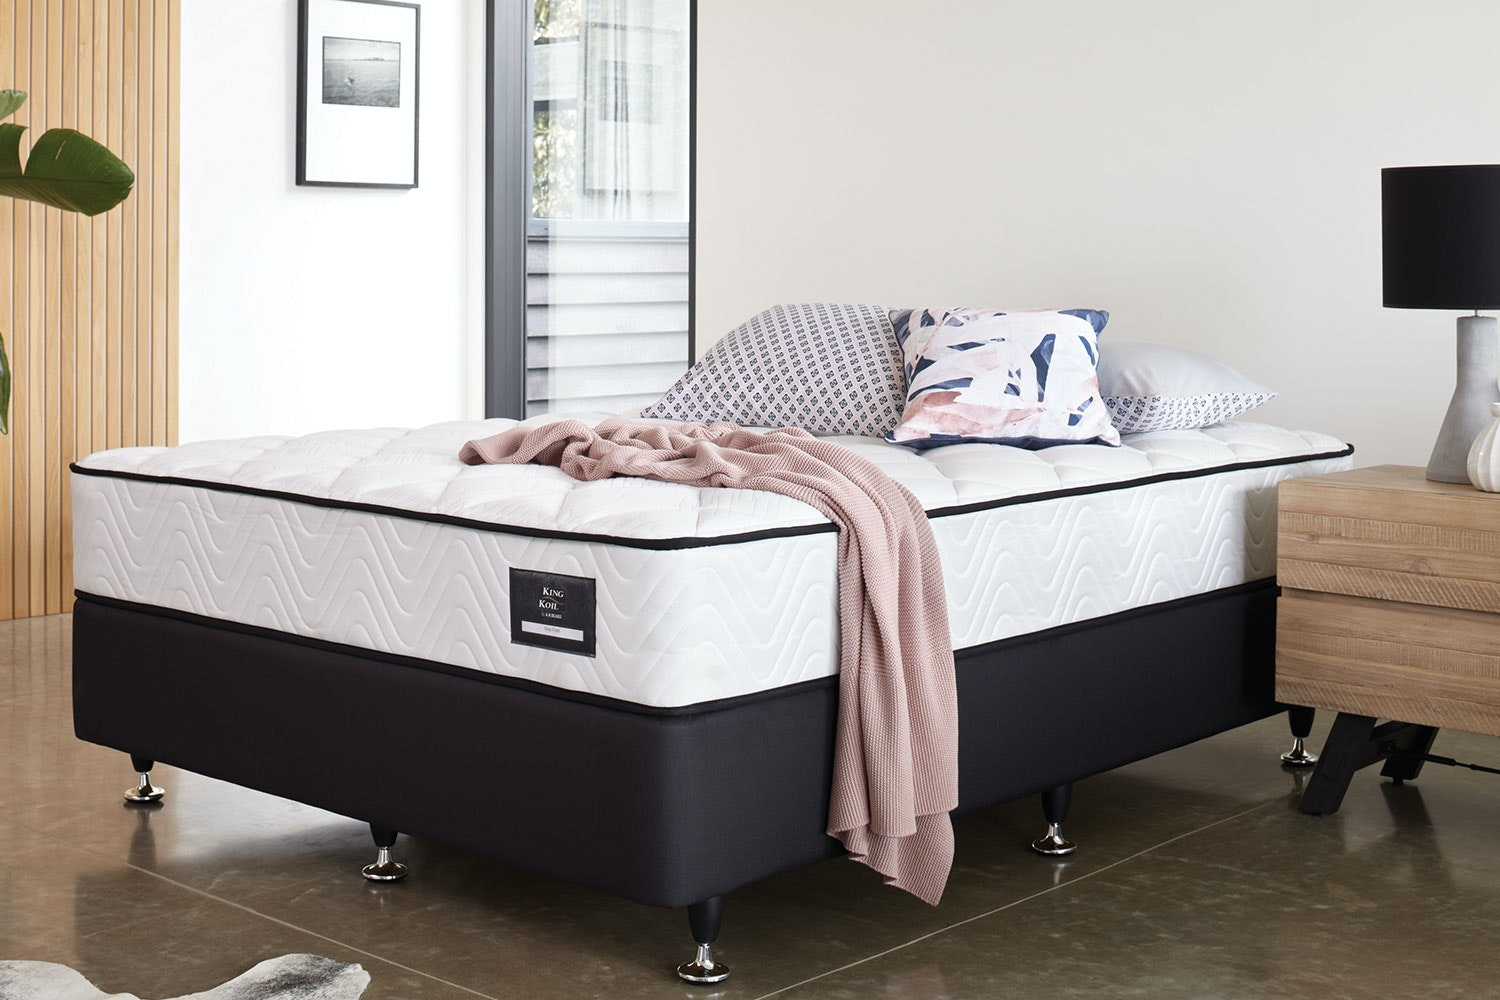 Viva Firm Super King Bed by King Koil